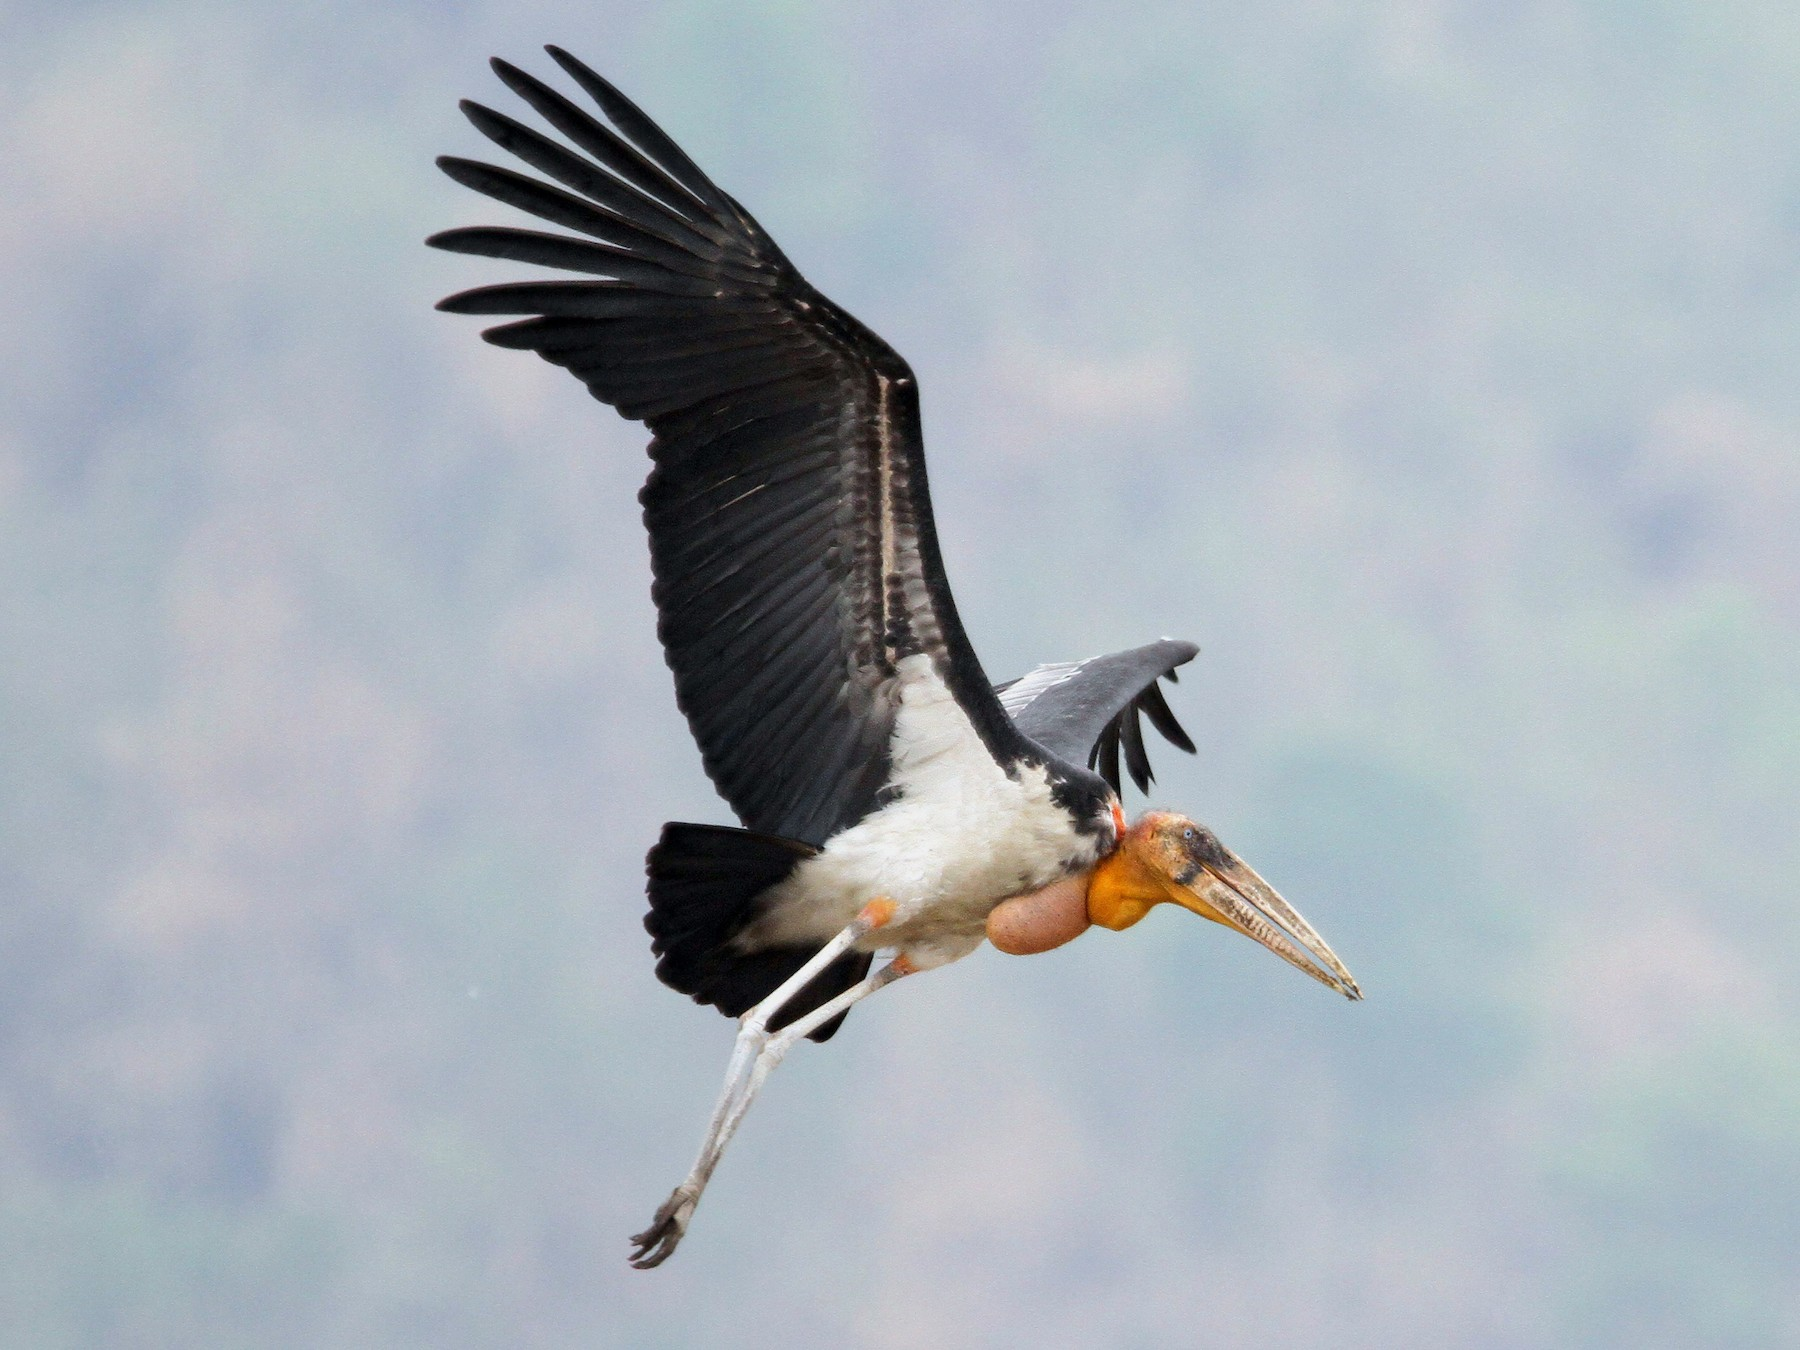 Greater Adjutant - Christoph Moning